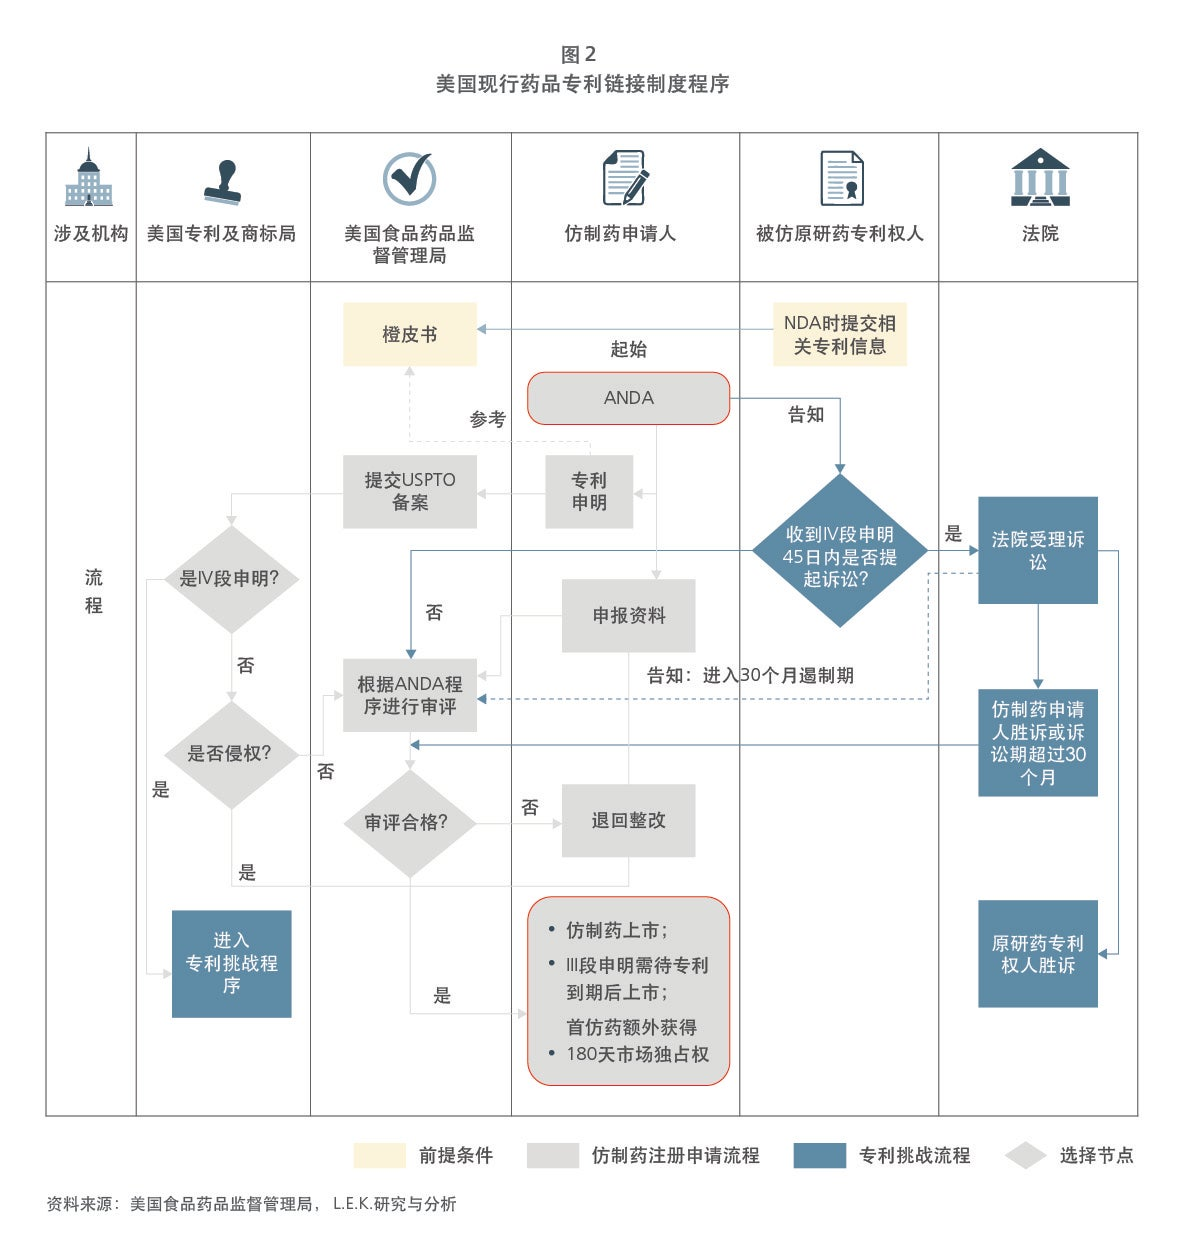 Chinese drug patent figure 2 chart